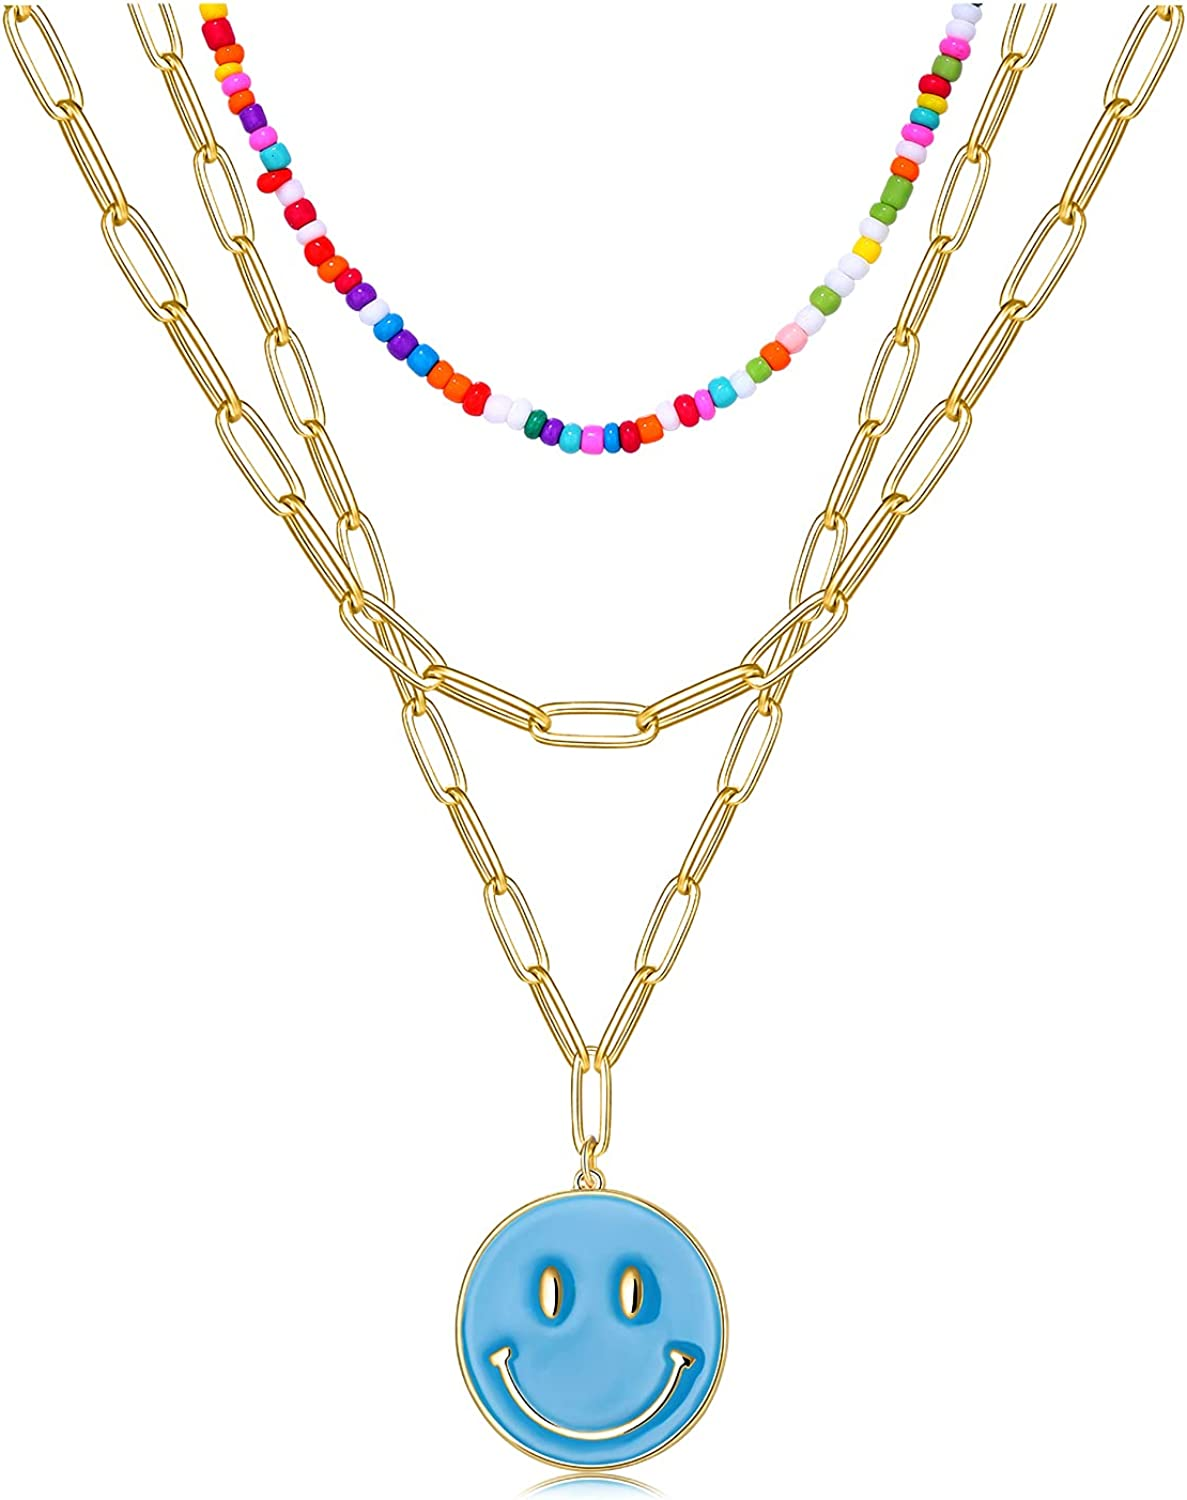 NLCAC 14K Gold Layered Beaded Necklaces for Women-Detachable Colorful Beaded Choker Dainty Paperclip Chain Smiley Face Pendant Necklace Y2k Jewelry